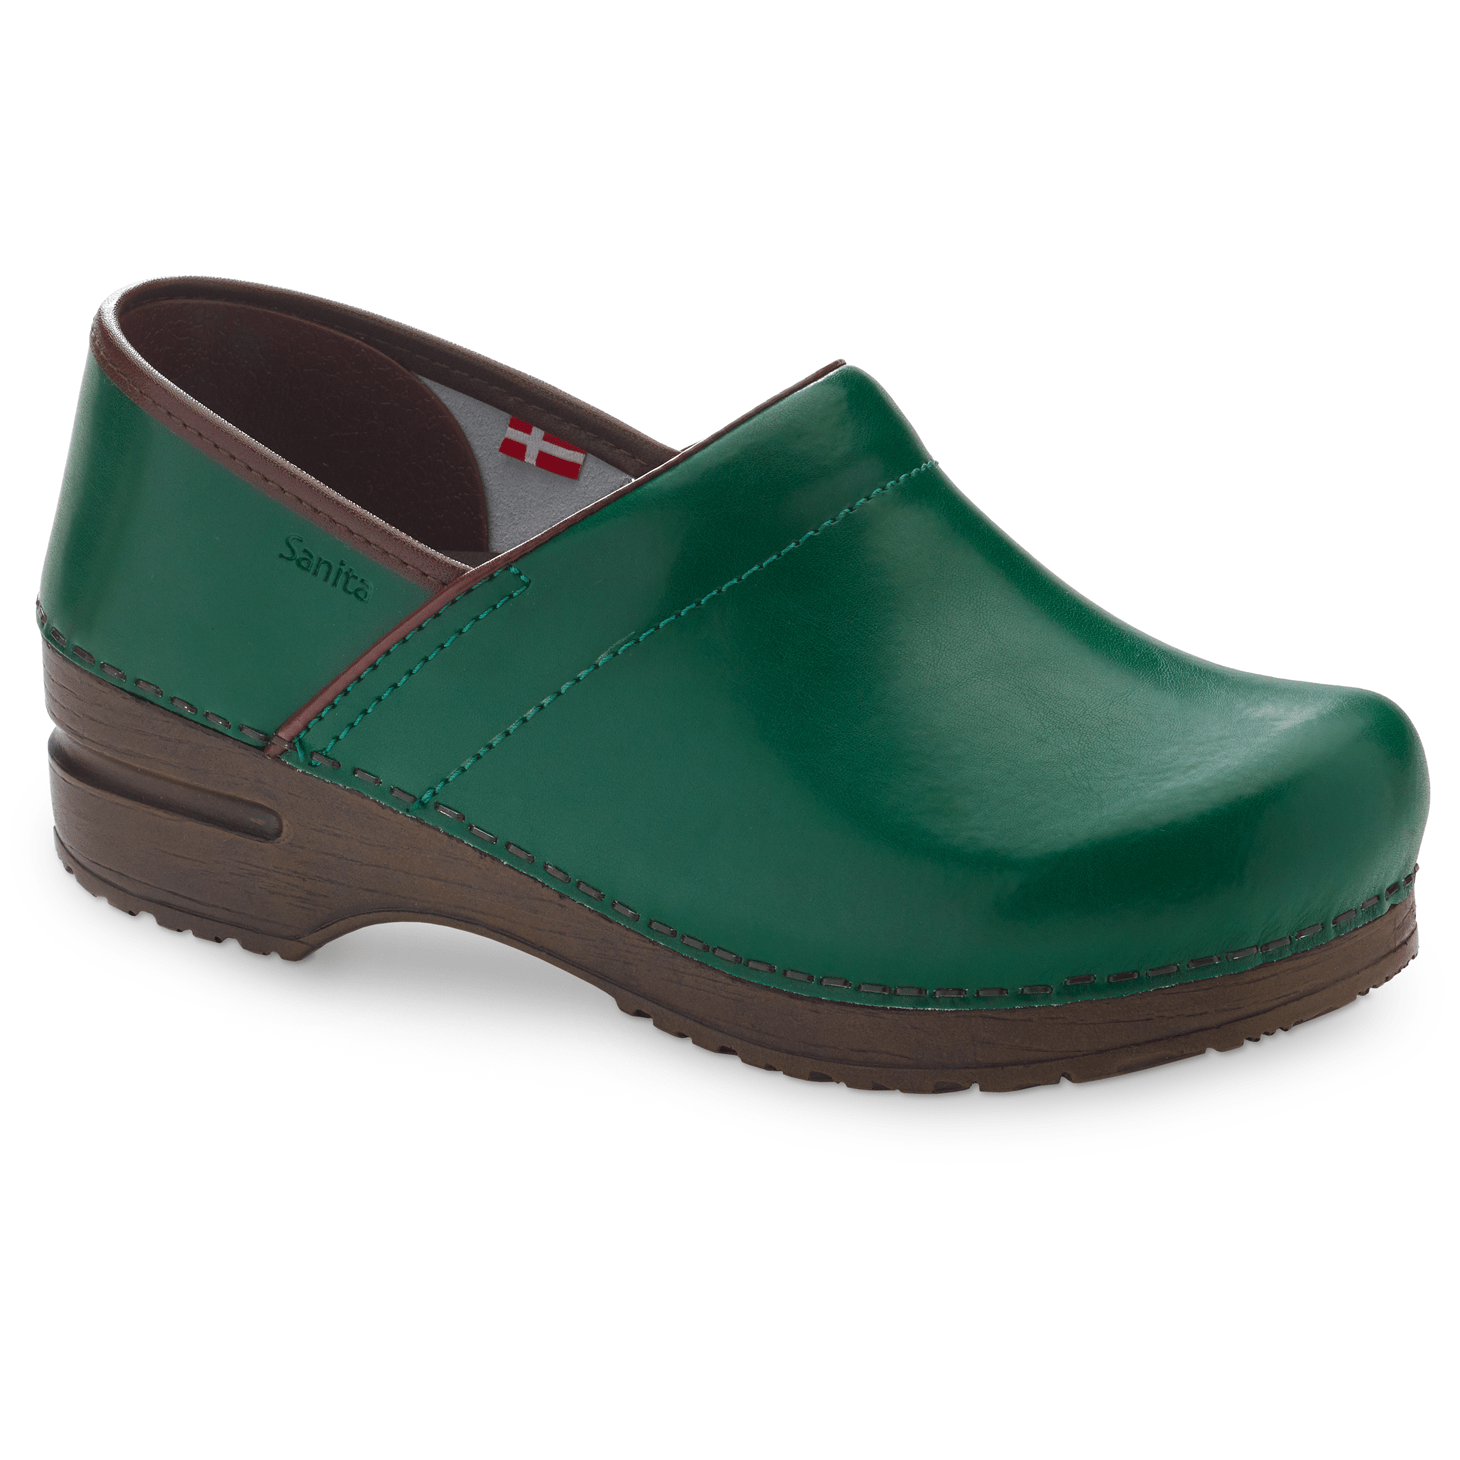 Sanita Izabella Women's in Dark Green Closed Back Clog